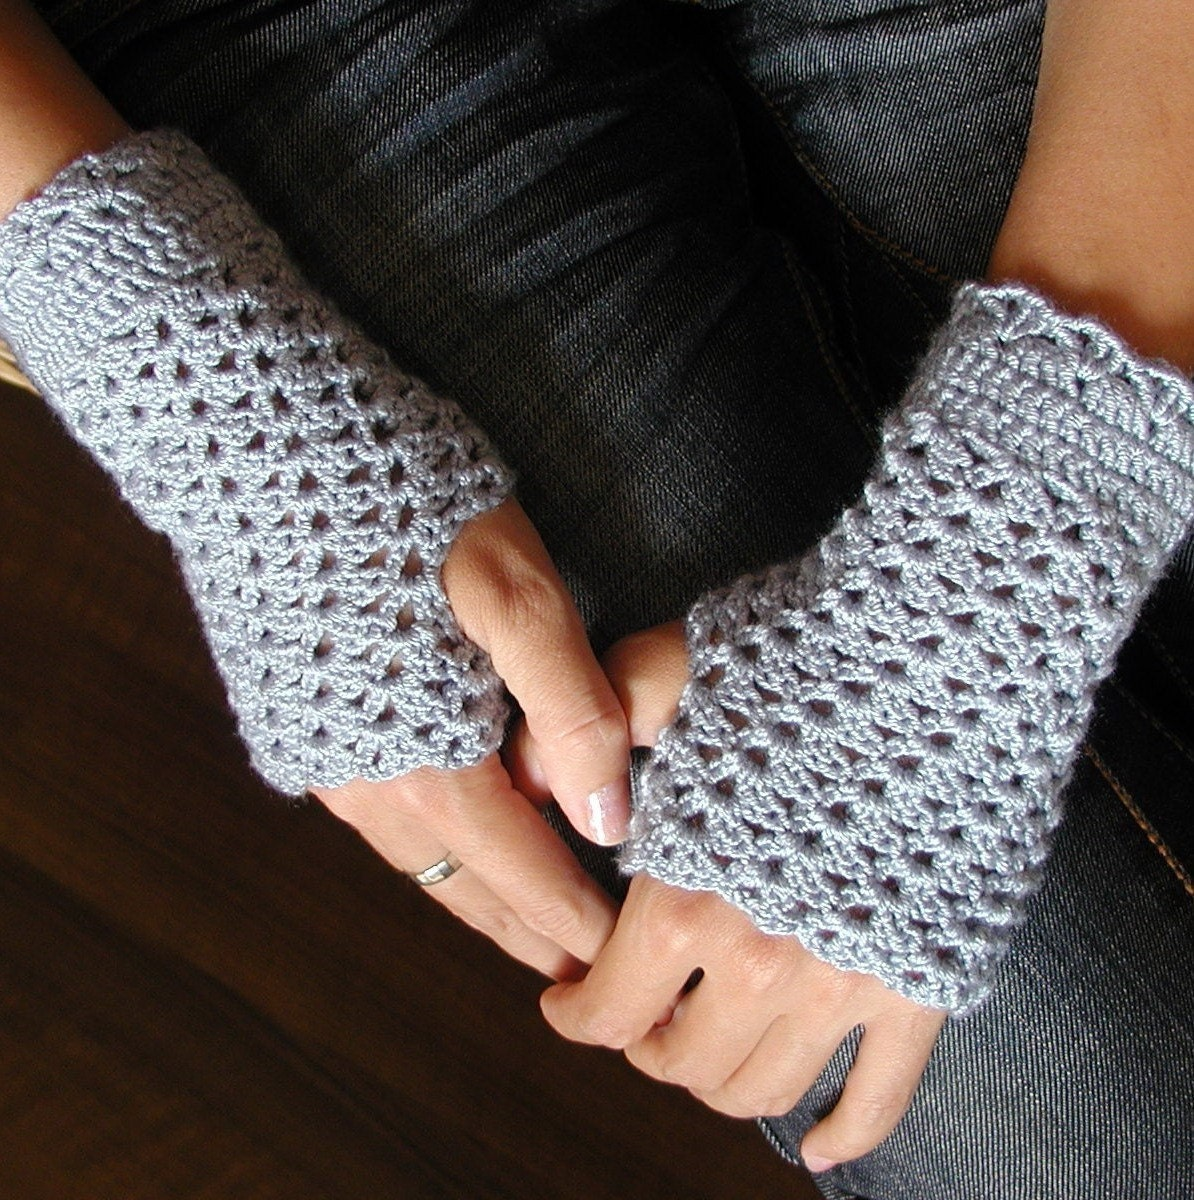 Crochet Free Patterns Mittens : Crocheted Fingerless Mittens PDF Crochet Pattern